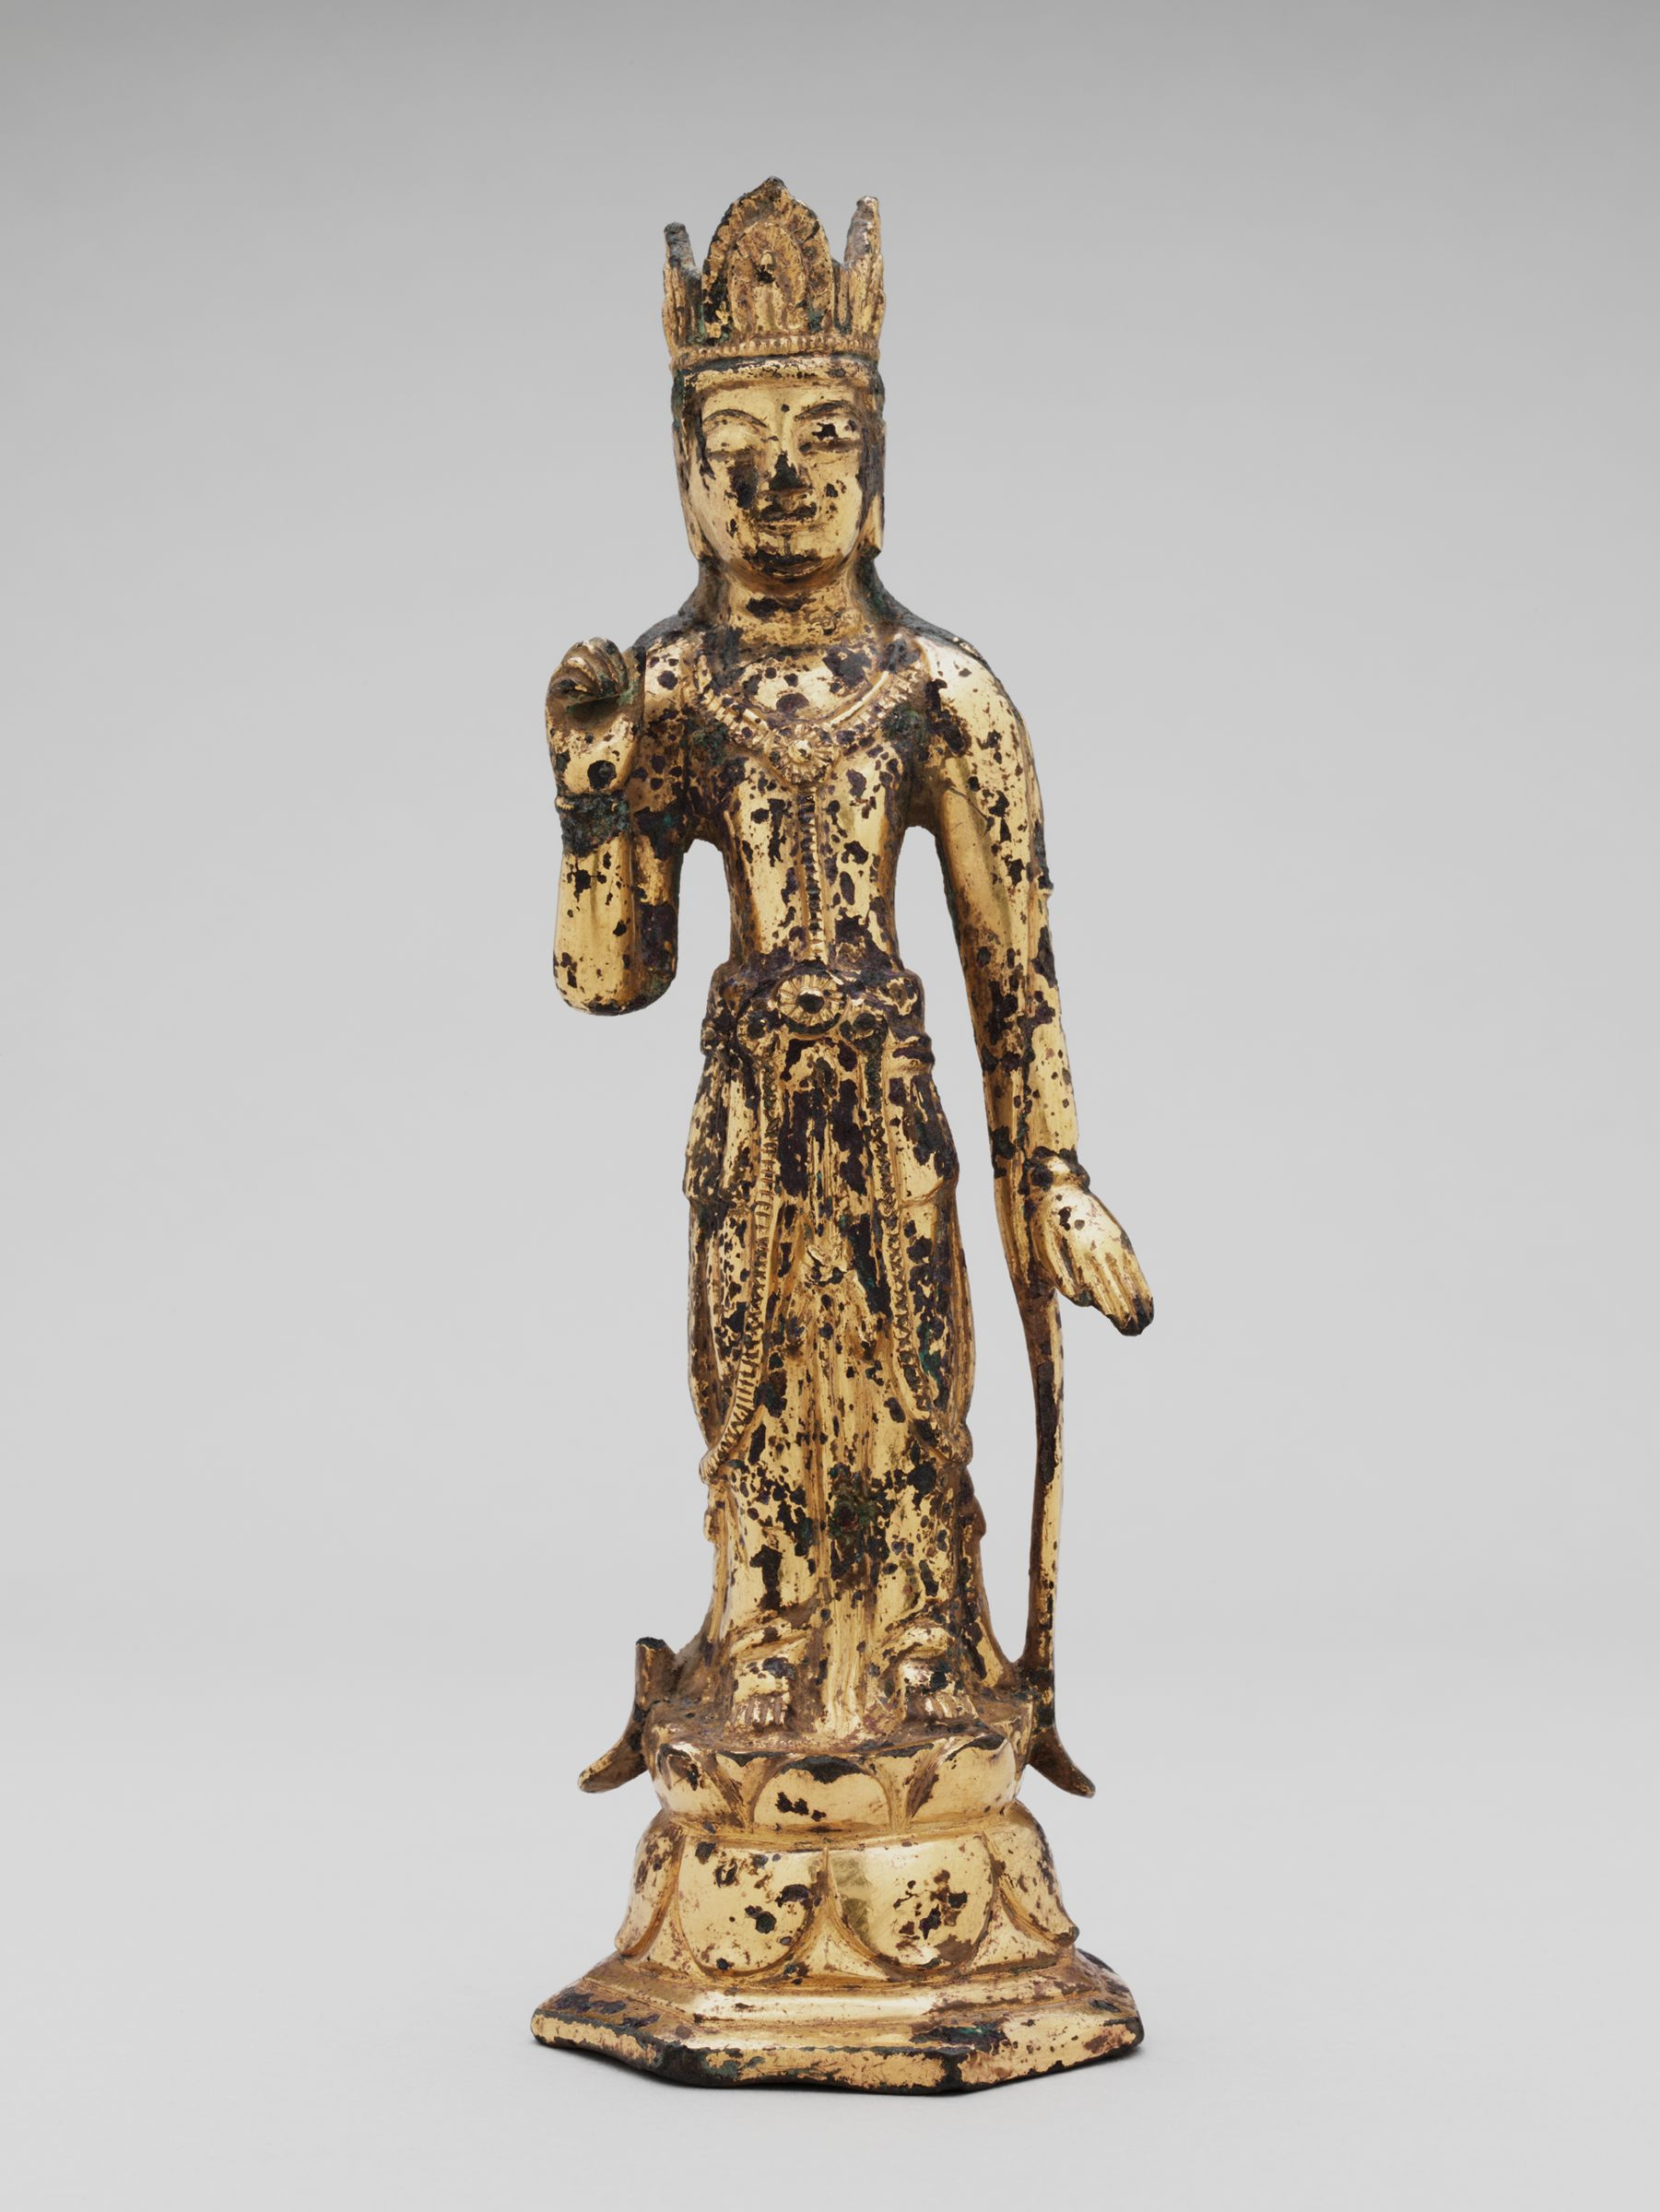 Crowned Bodhisattva, Probably Taeseji Posal (Bodhisattva Mahasthamaprapta), Standing On A Heptagonal, Double-Lotus Base, The Bodhisattva's Right Hand Raised, The Left Hand Lowered